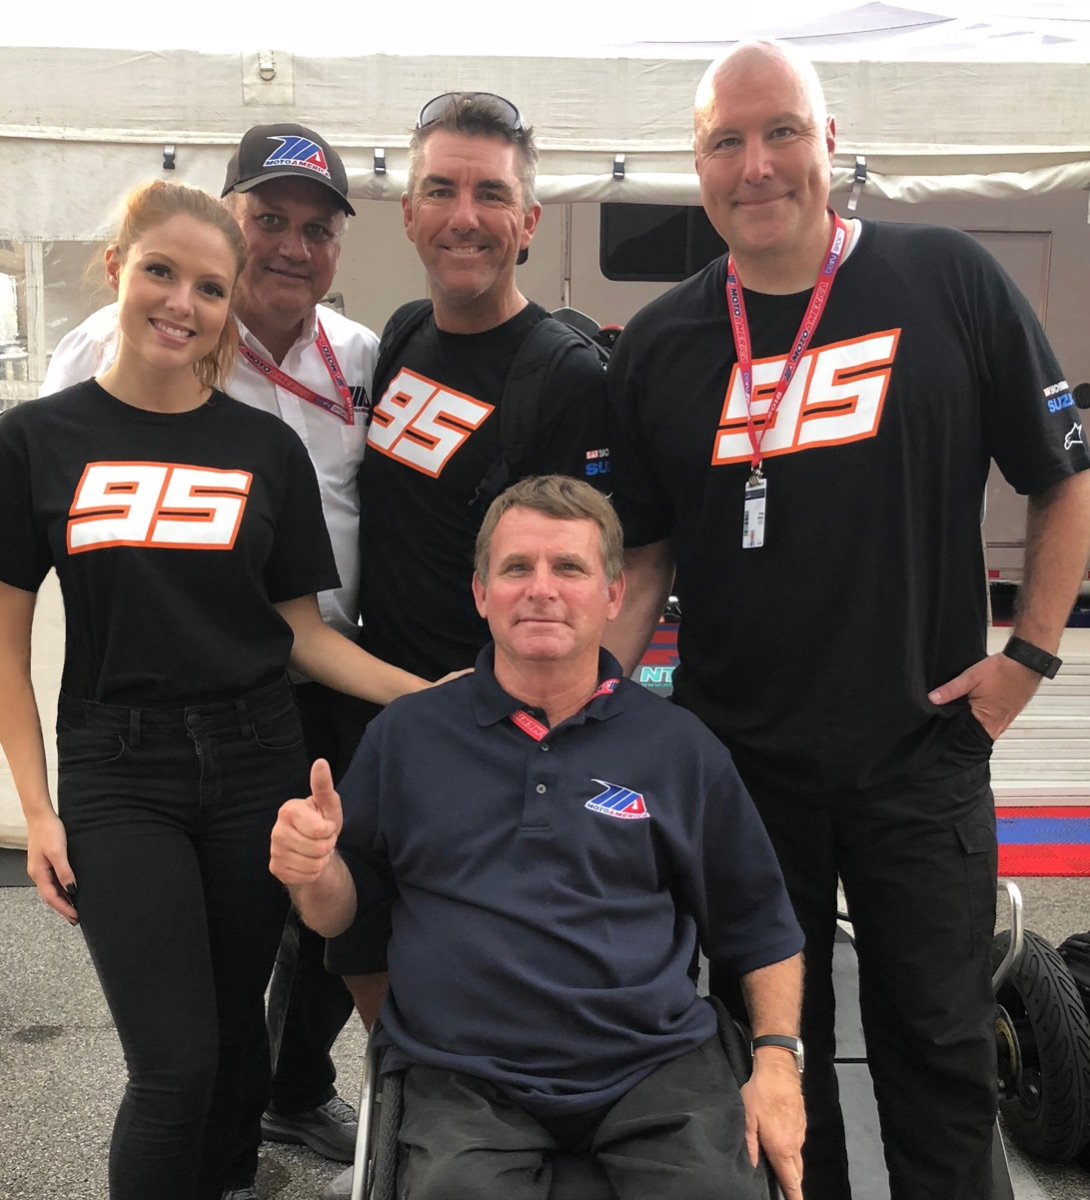 (From left to right) Hannah Lopa, MotoAmerica partner Chuck Aksland, Jason Pridmore, MotoAmerica President Wayne Rainey and Greg White.